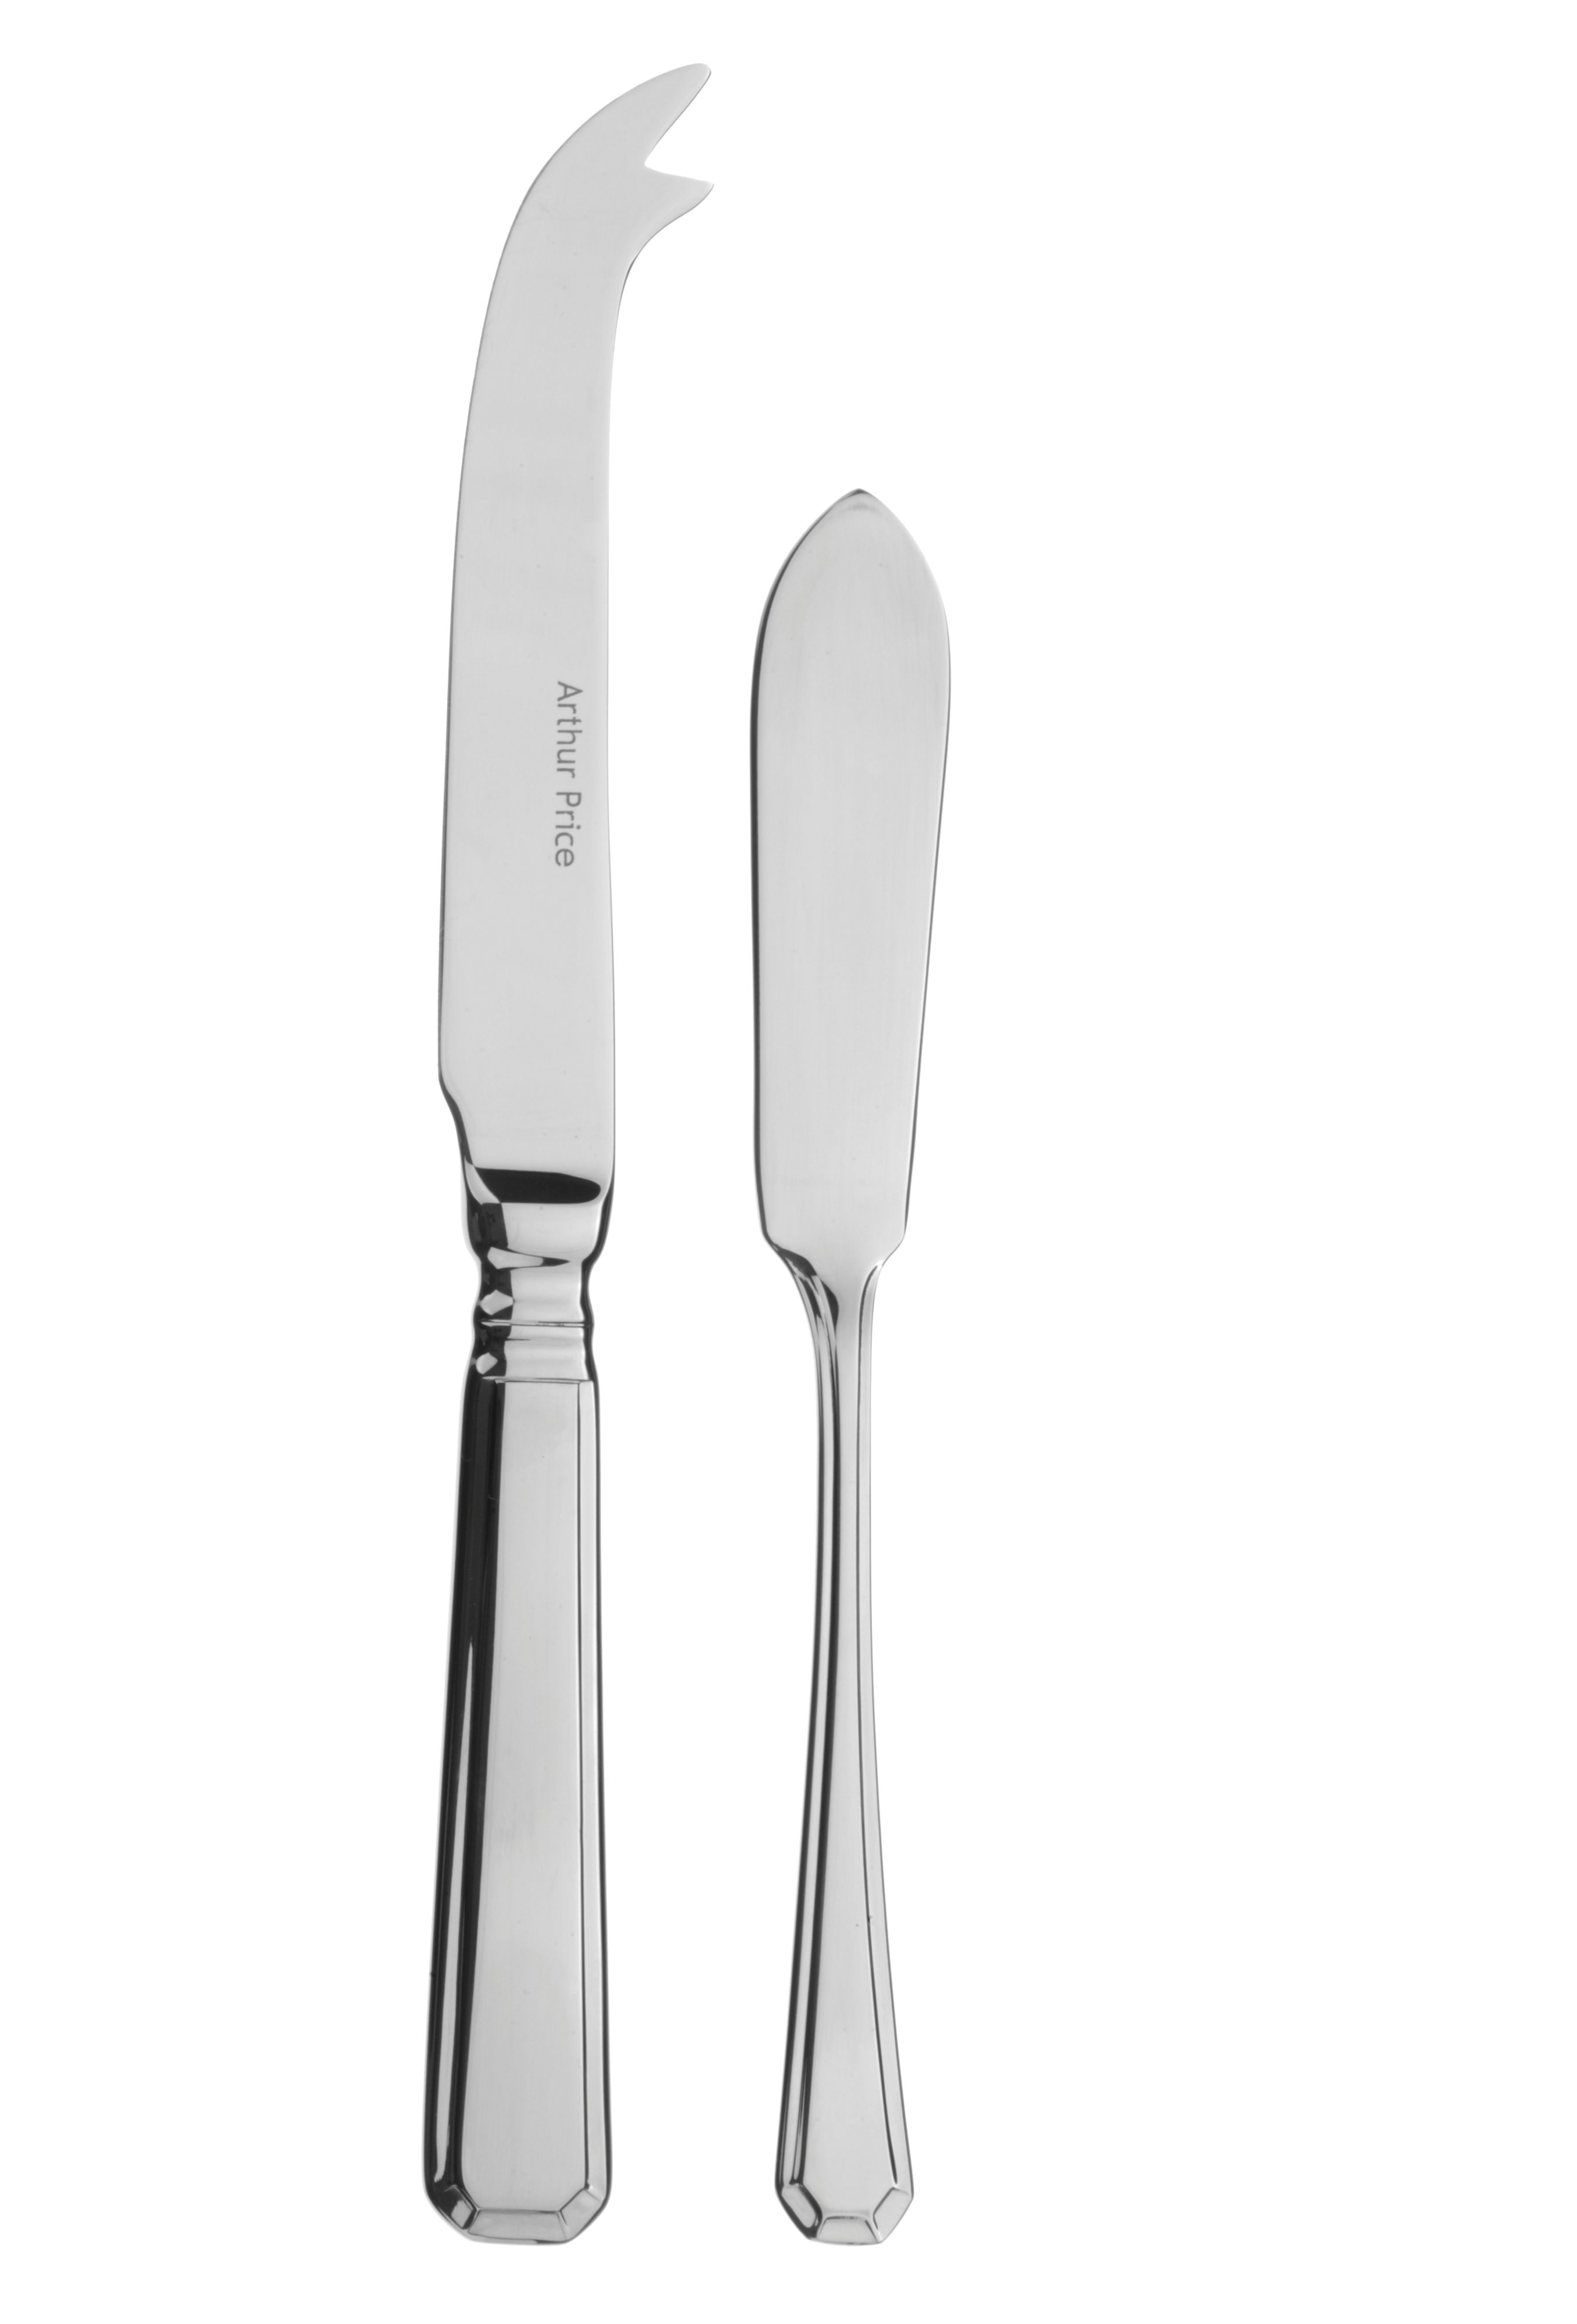 Cheese knife & butter knife set